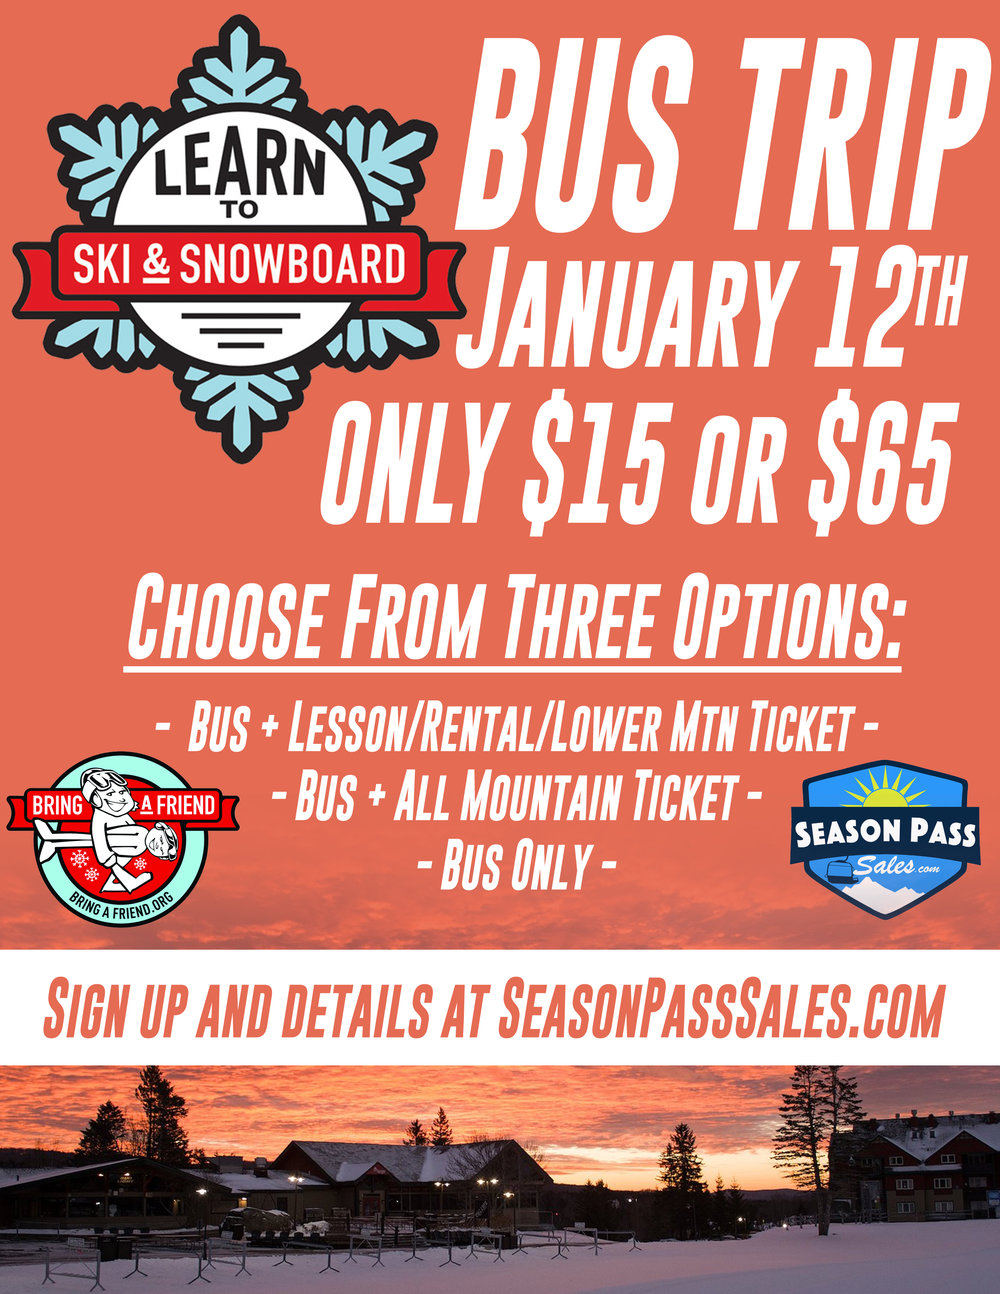 LSSM  Learn to ski and snowboard month Mount Snow Bus Trip Peak Pass Drifter